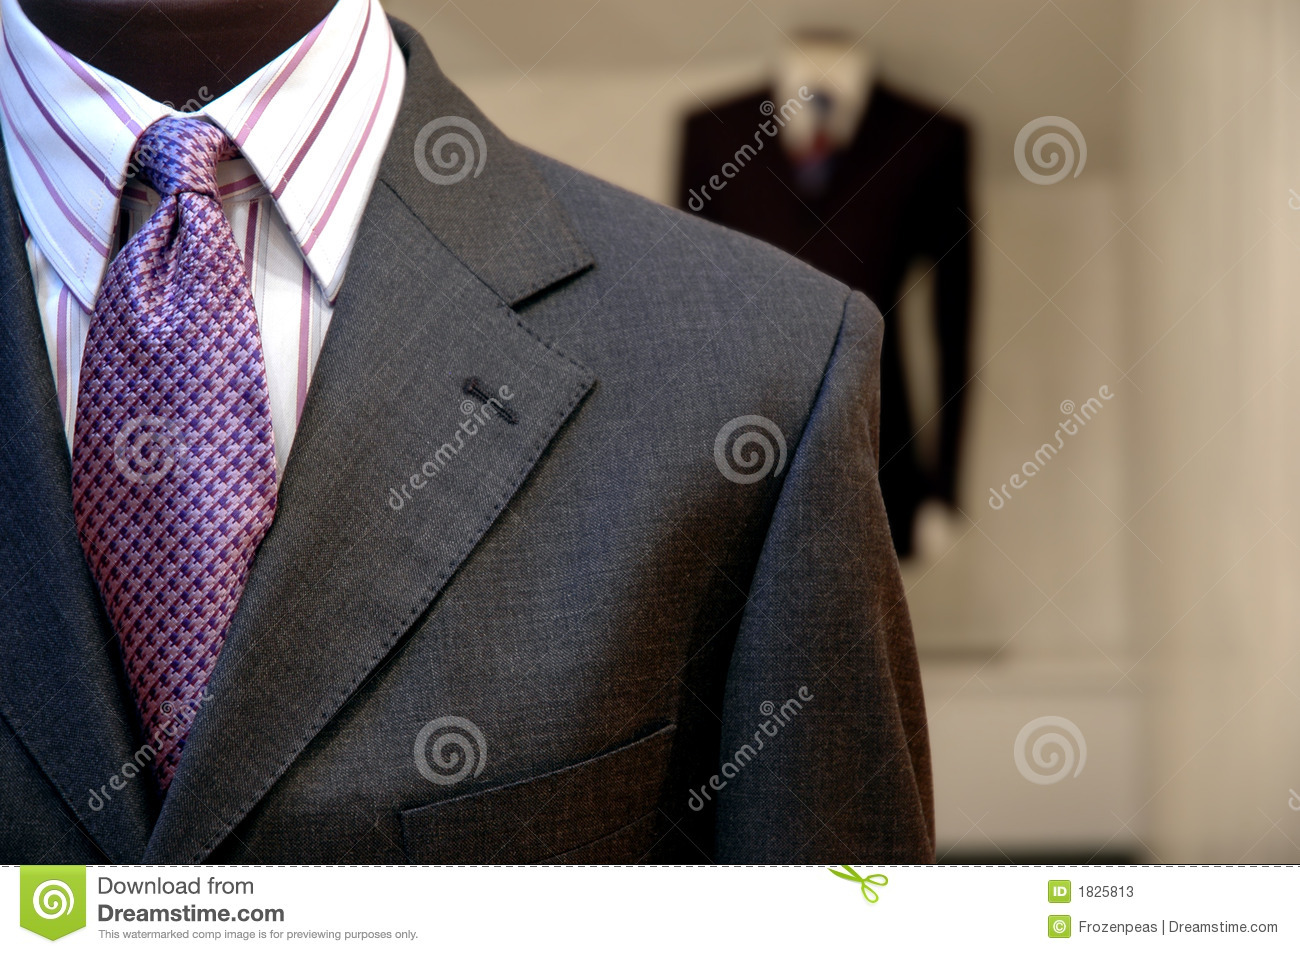 78f6a665e038 Suits Mannequins Stock Images - Download 154 Royalty Free Photos